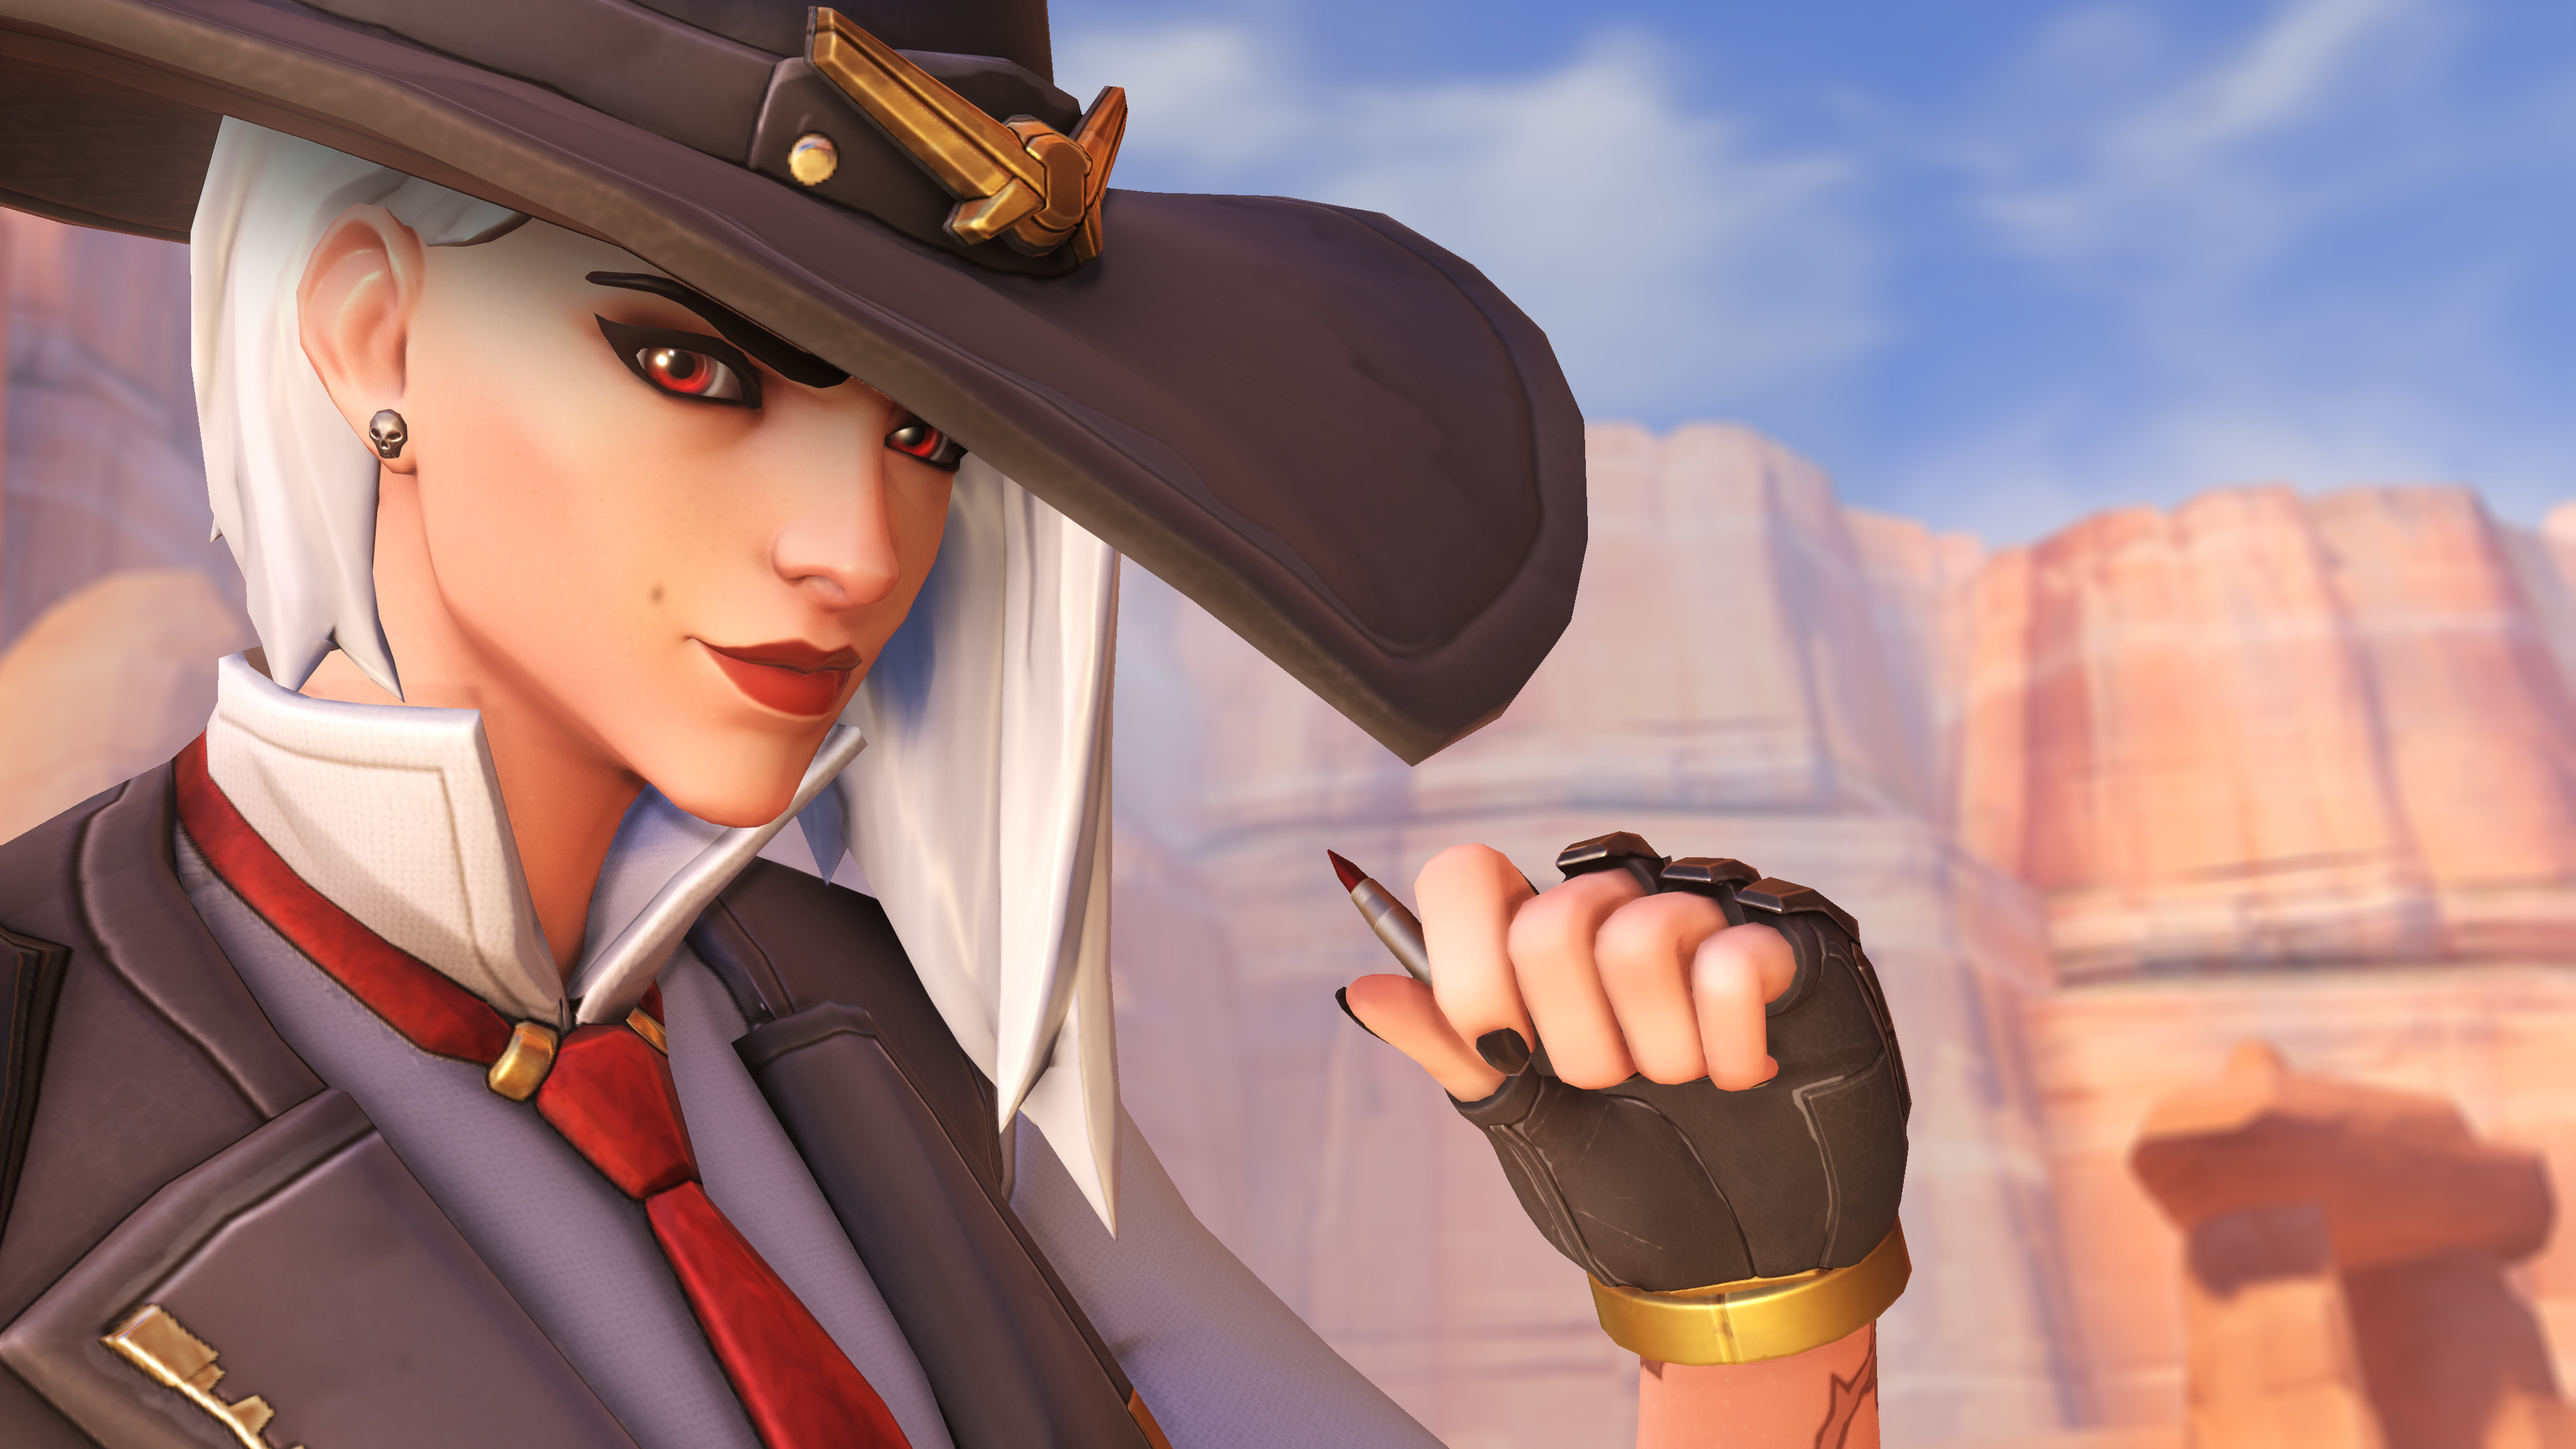 Fb Cute Wallpaper Ashe Overwatch 4k Hd Games 4k Wallpapers Images